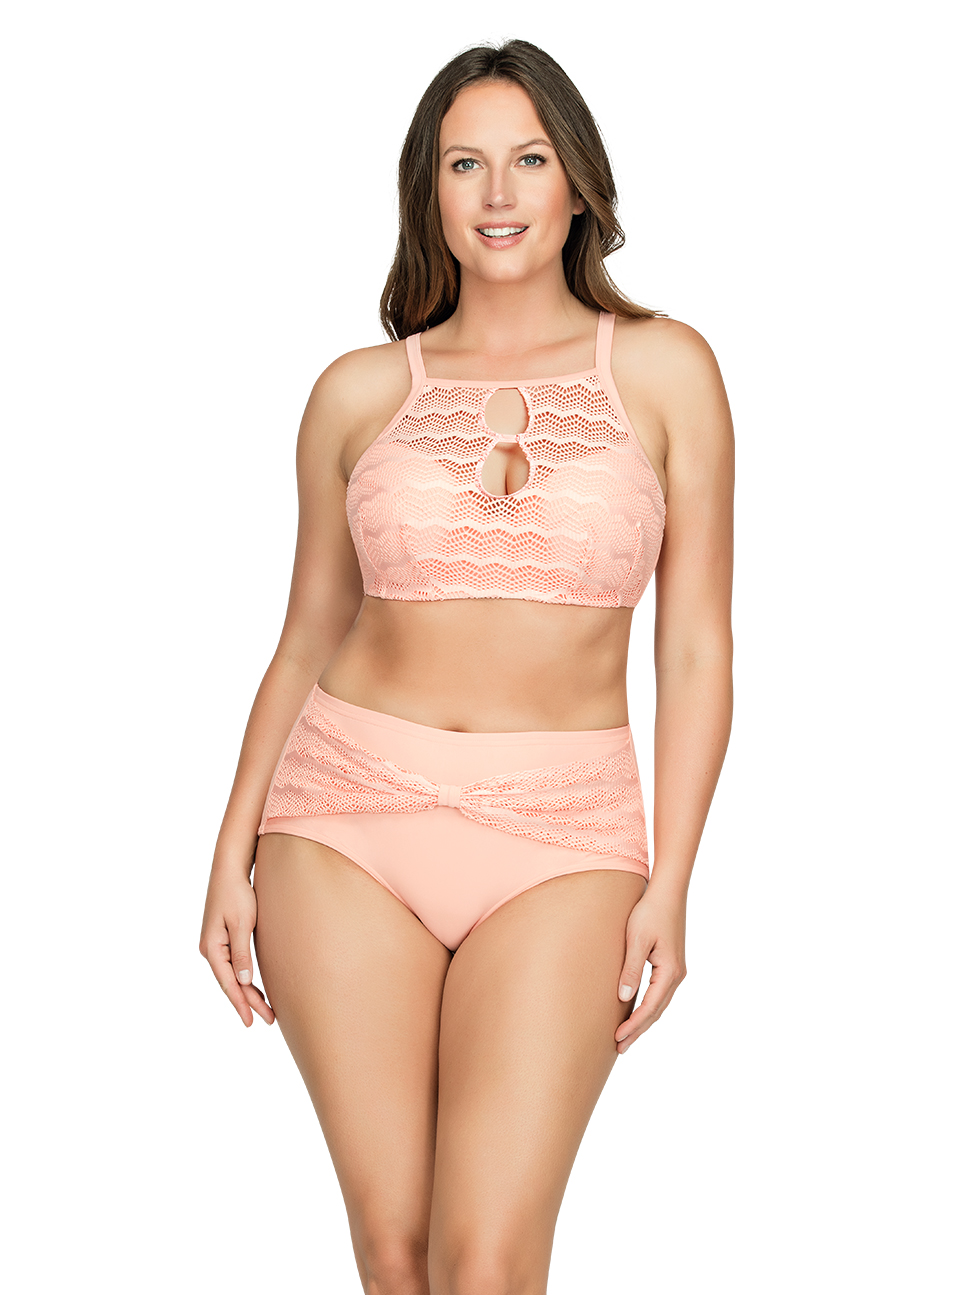 PARFAIT Keira HalterNeckBikiniTopS8071 HighWaistBikiniBottomS8075 Peach Front1 - Keira High-Waist Bikini Bottom Peach S8075